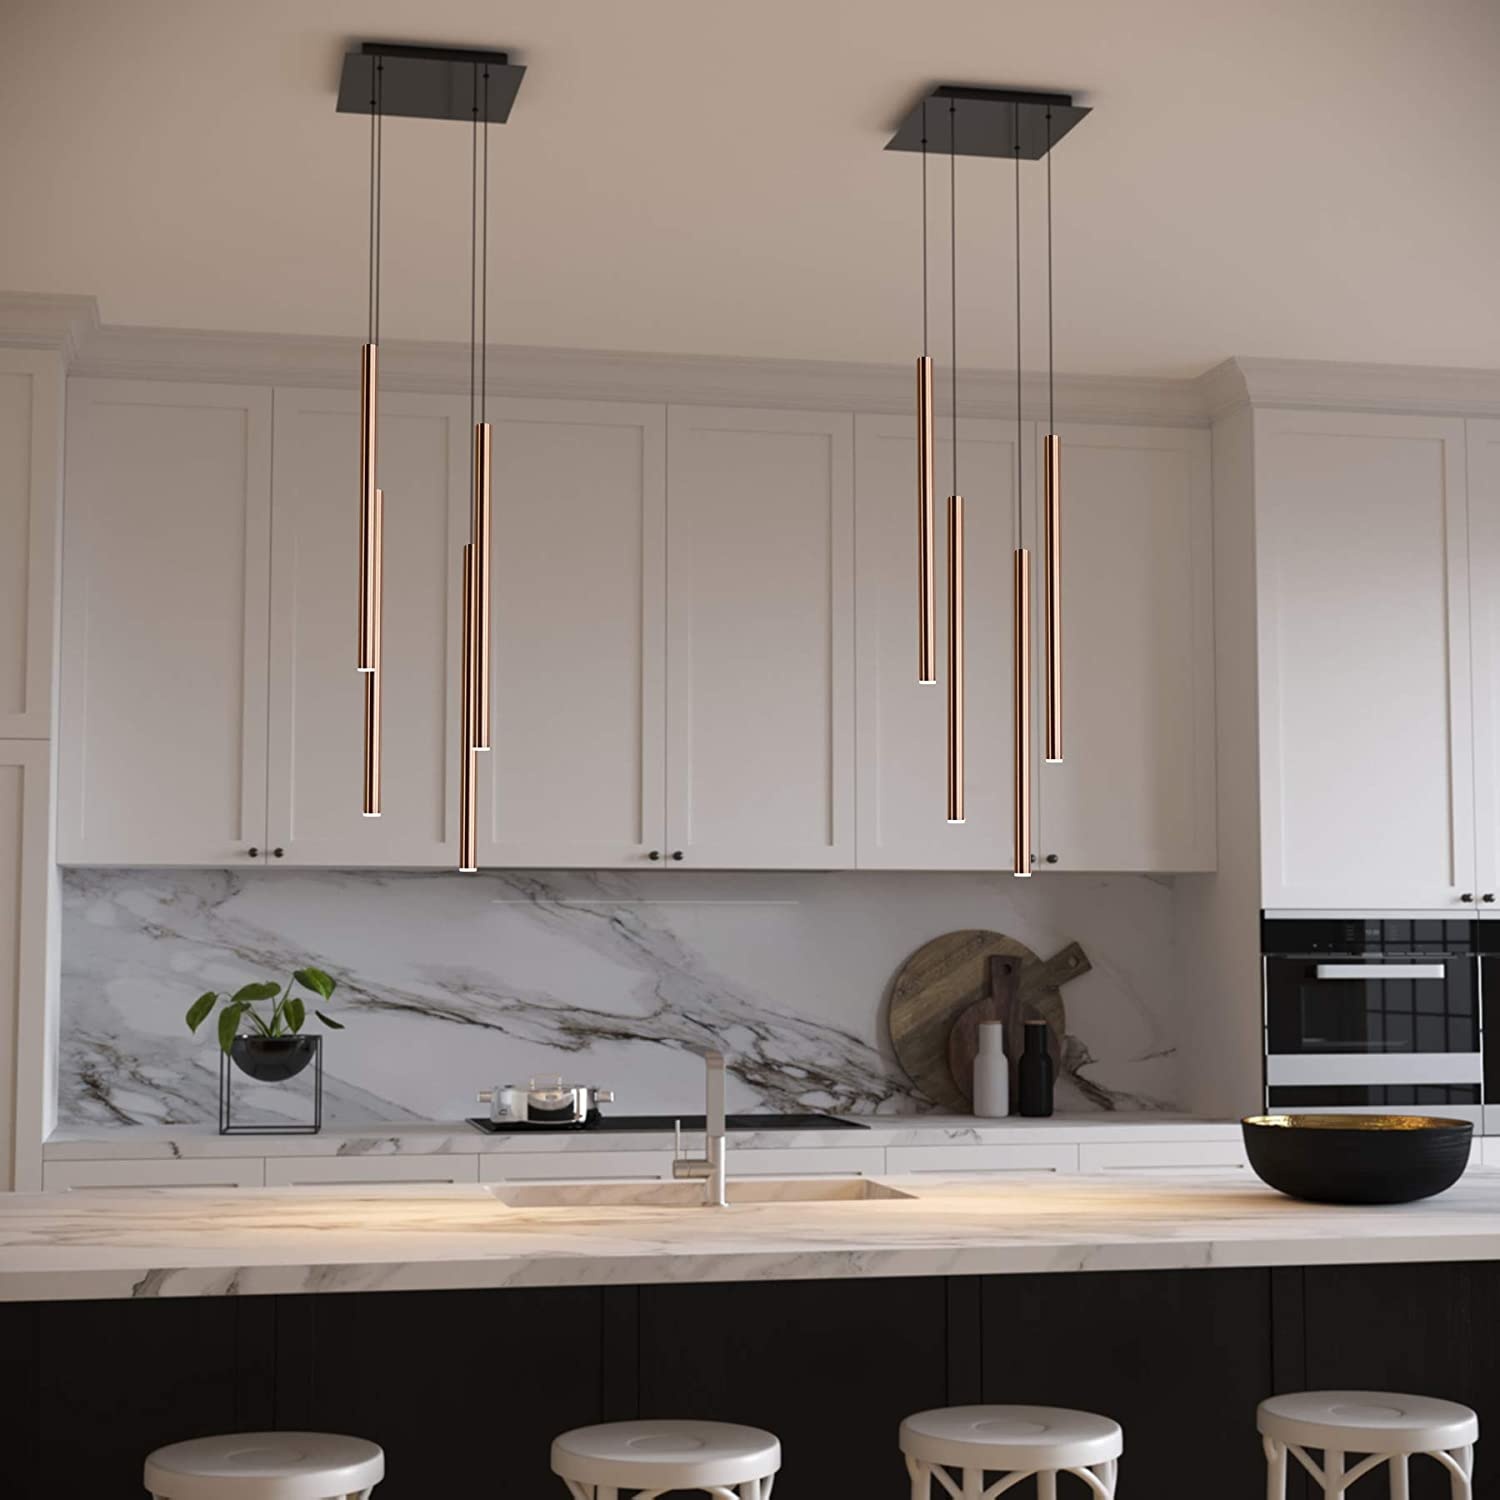 Cluster Pendants LED Hanging Light Fixture for Kitchen Island Bar Foyer CANALIS 3 Mini Pendant Lighting Copper Lamp Bulb Included Adjustable Wire Dimmable